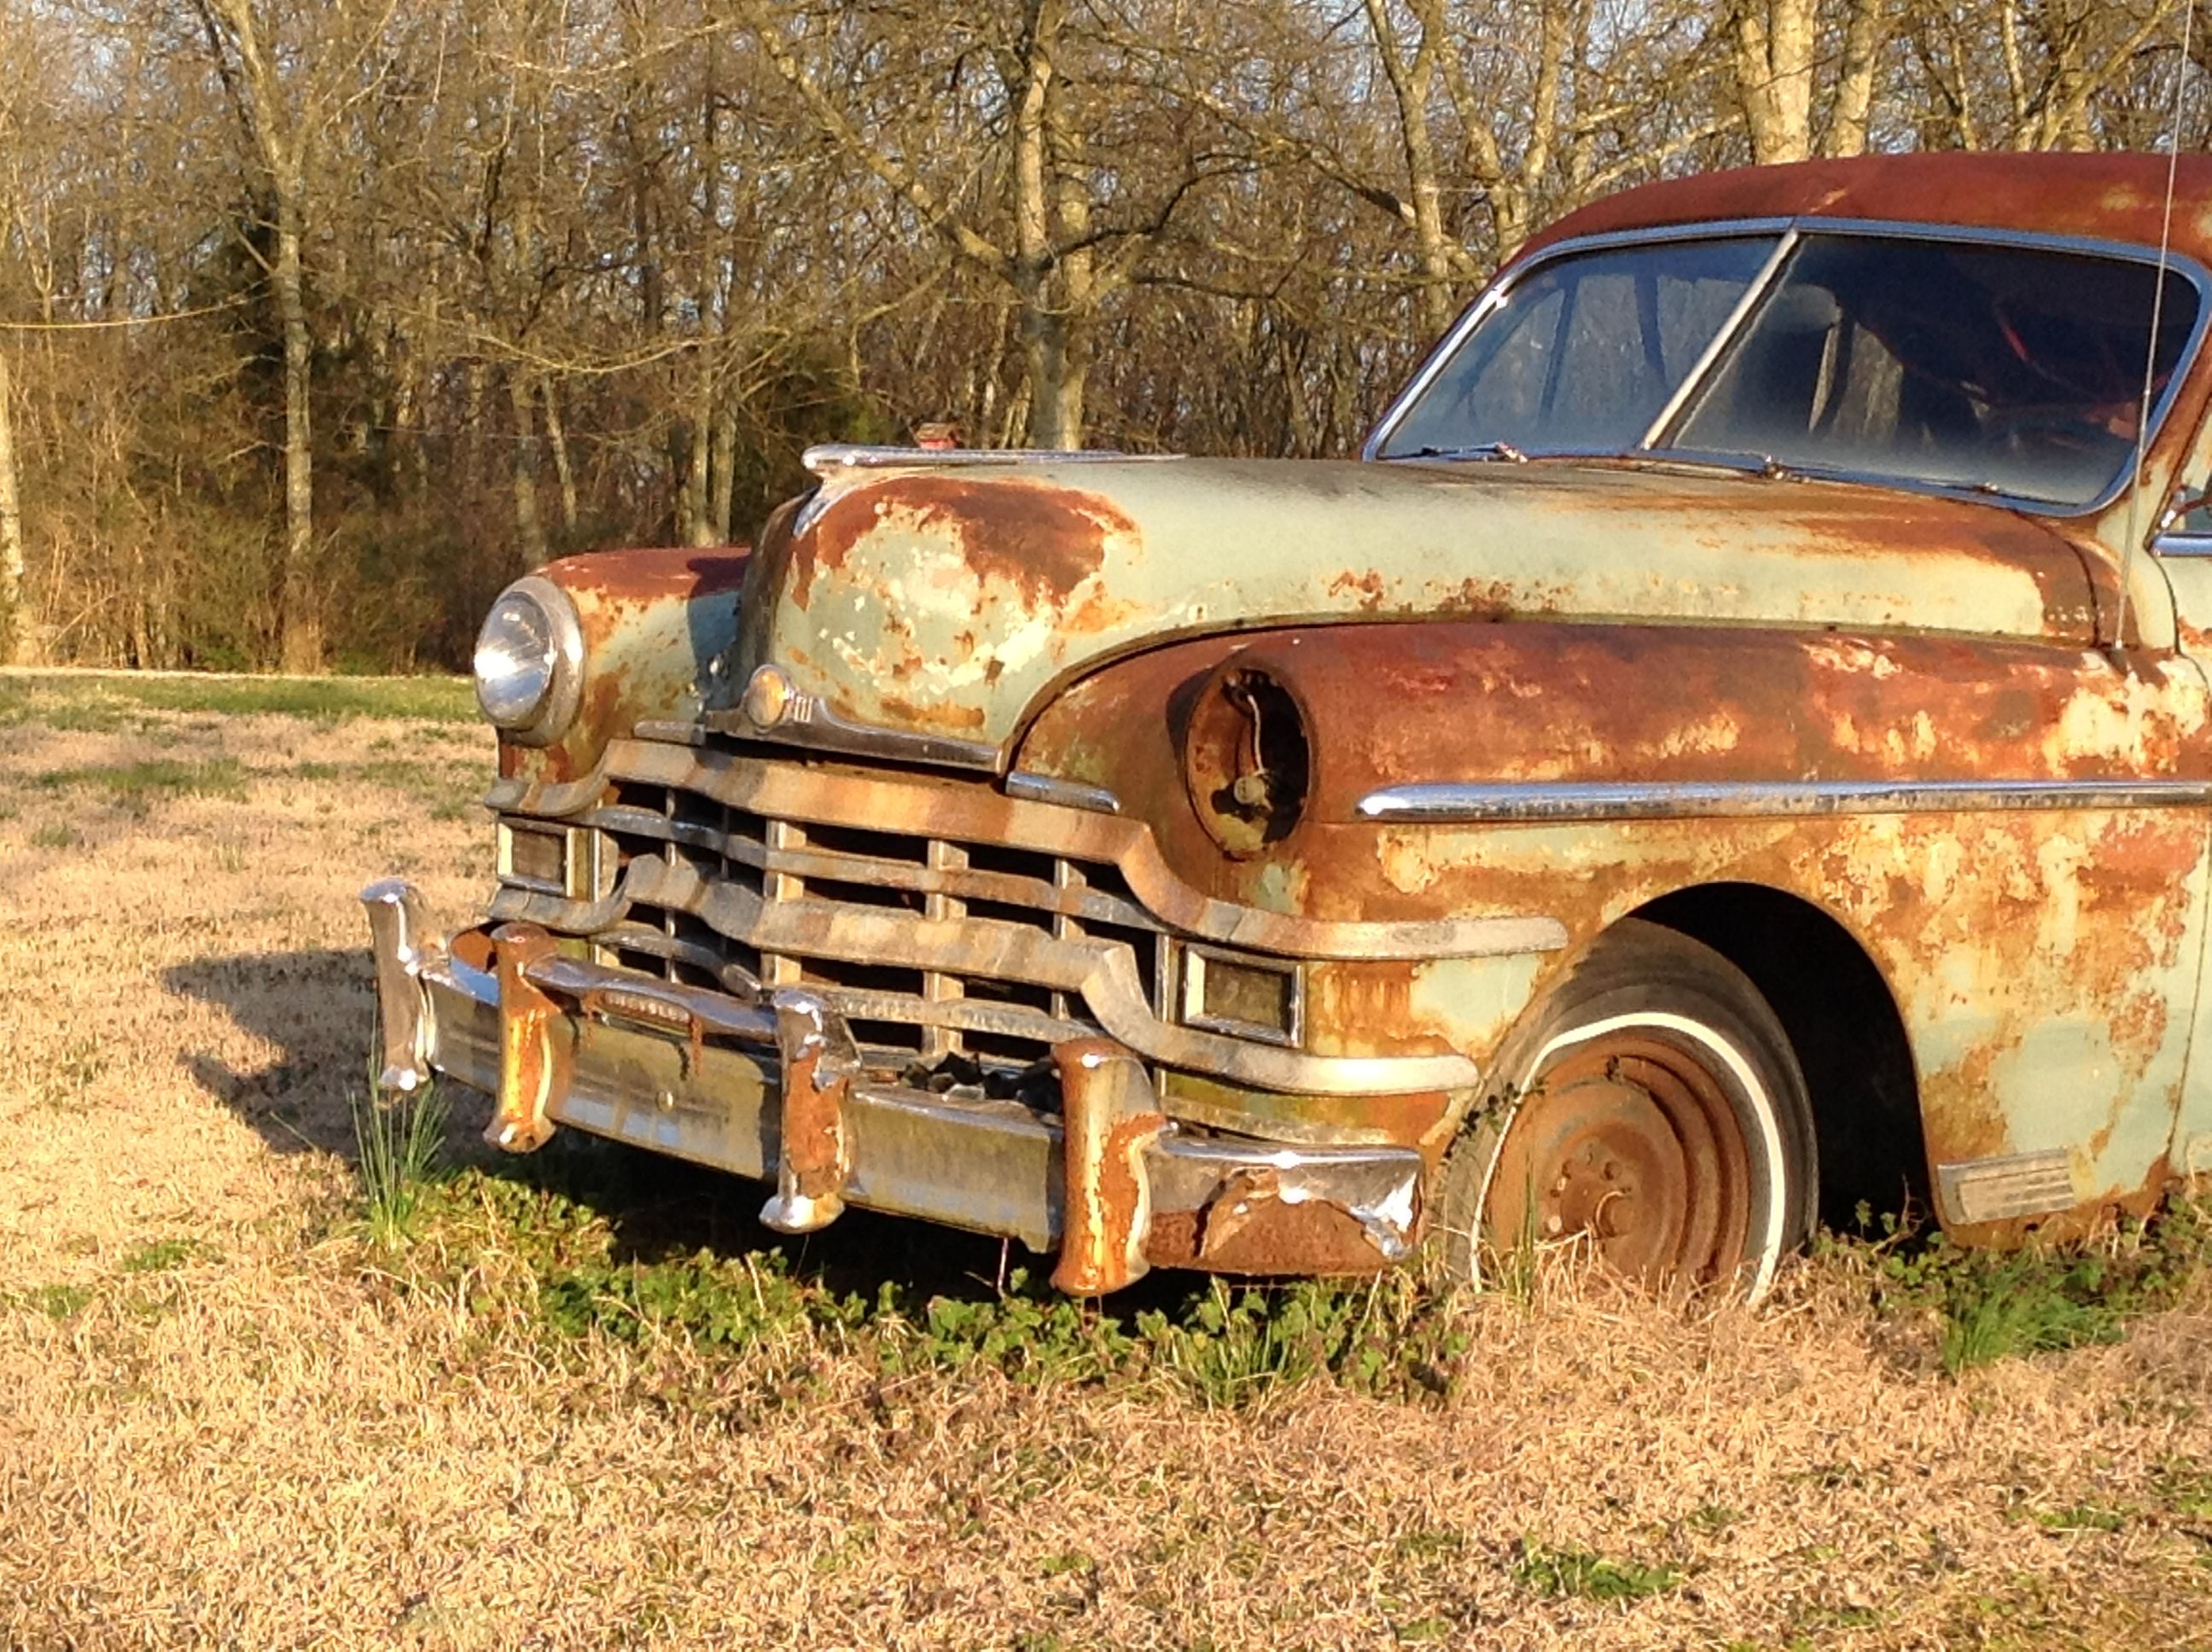 Old car in Tennessee   Rusty trucks & cars   Pinterest   Cars